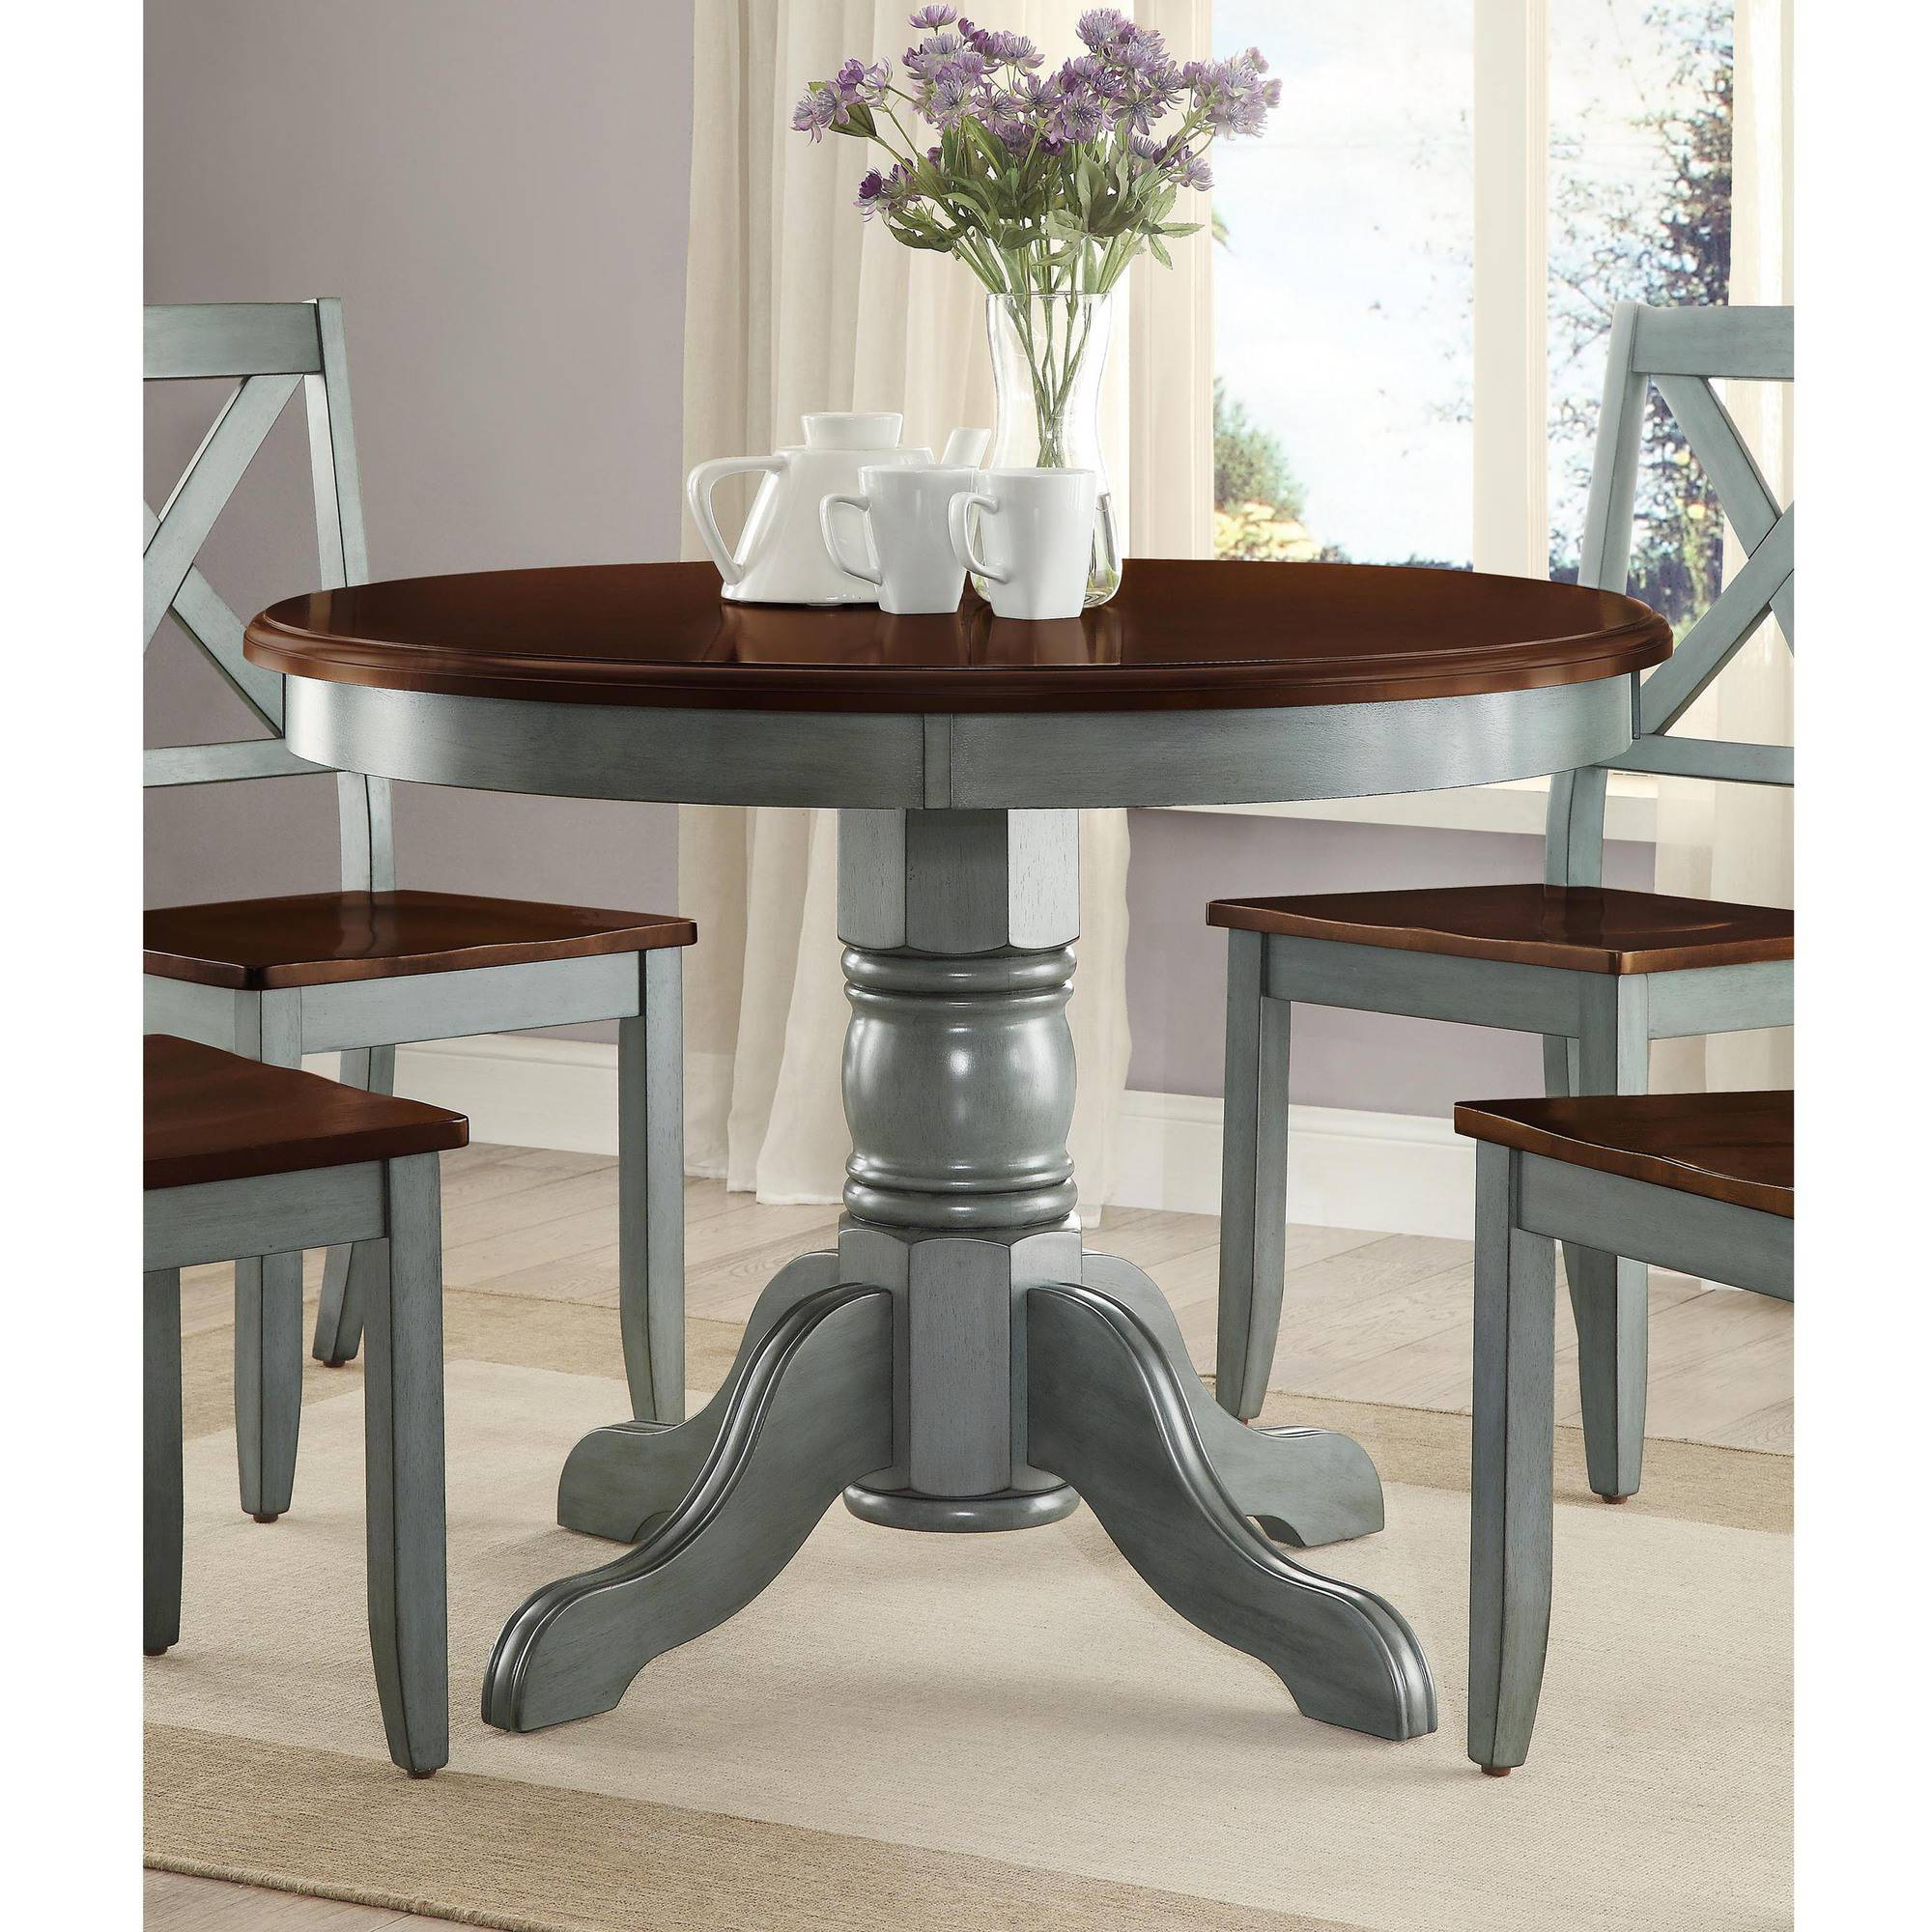 Round Kitchen Table Set Dining And Chairs Furniture Inspiration